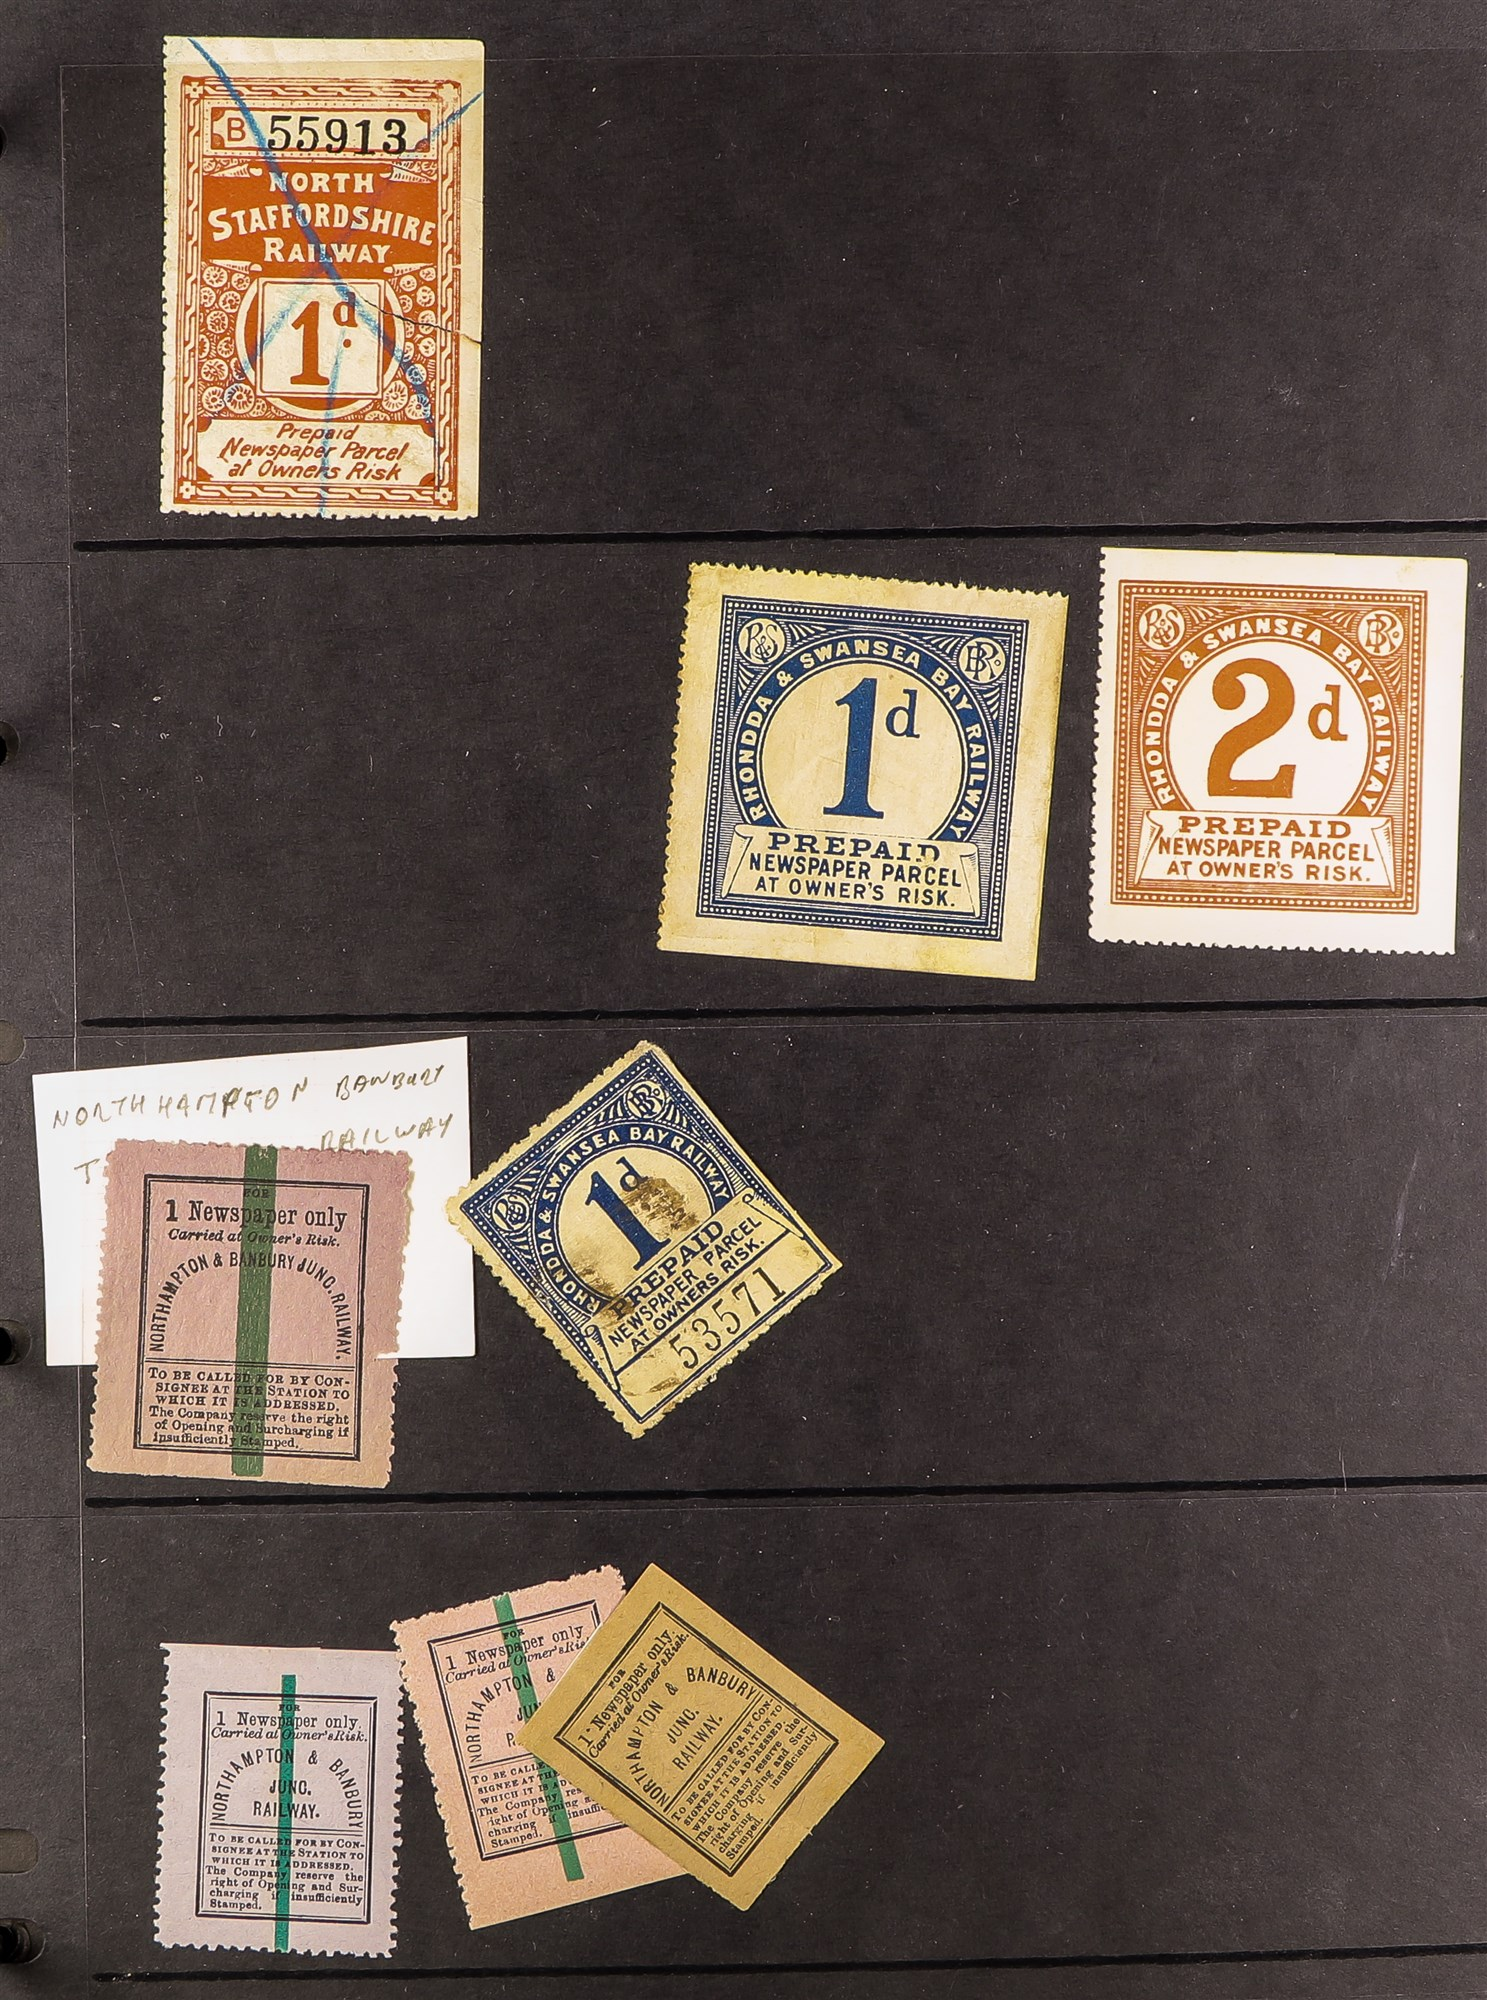 GREAT BRITAIN RAILWAY LETTER AND NEWSPAPER STAMPS 1890's-1940's COLLECTION in two albums, mint and - Image 20 of 24